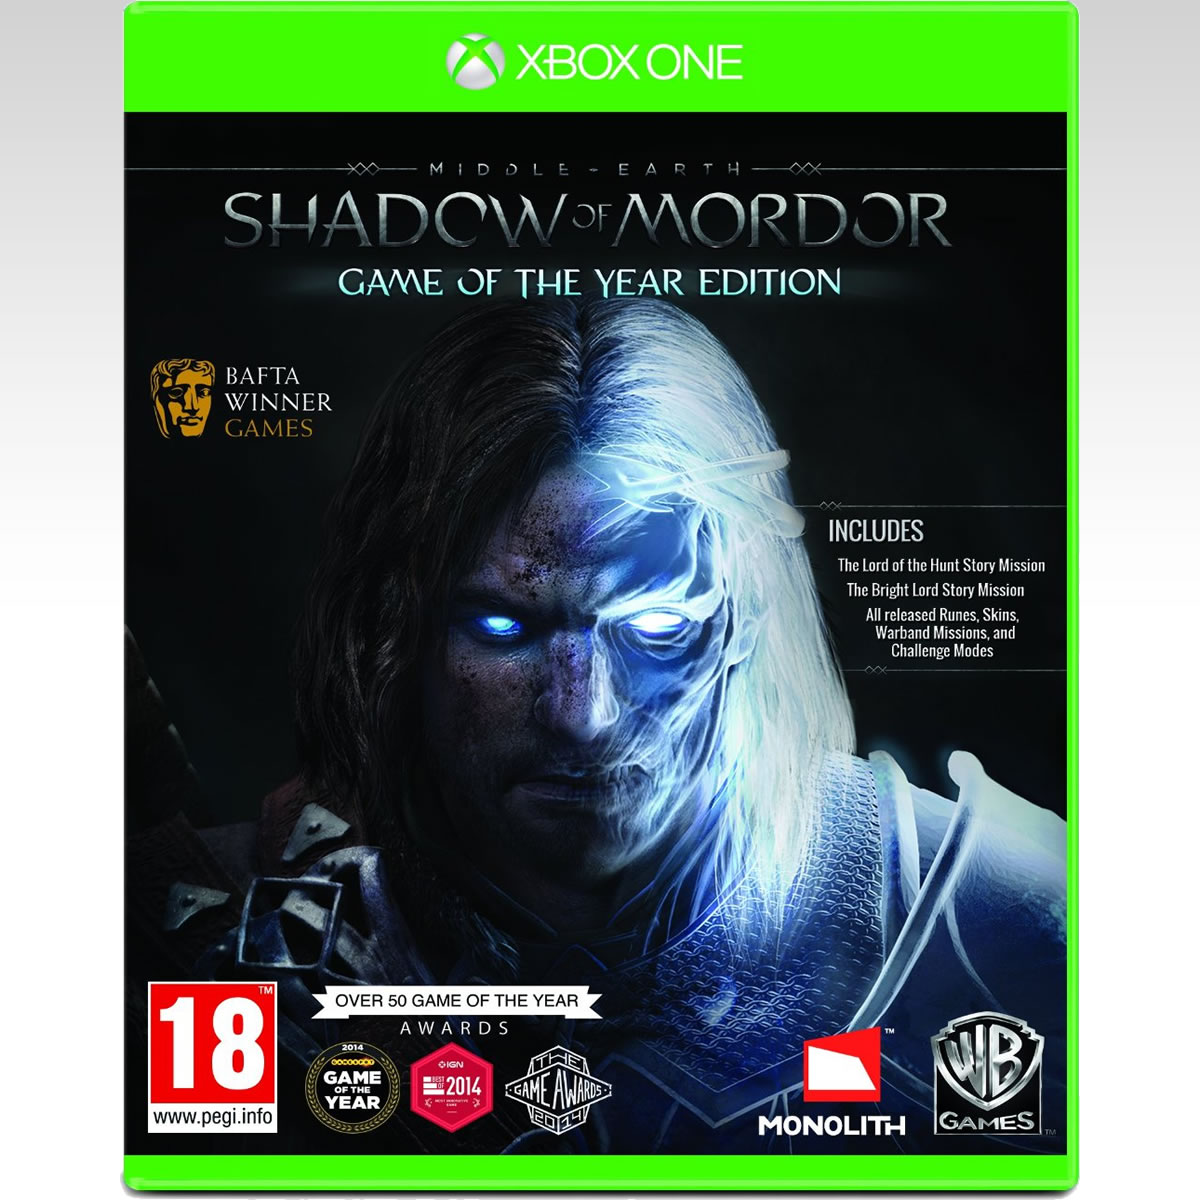 MIDDLE EARTH: SHADOW OR MORDOR - GAME OF THE YEAR EDITION (XBOX ONE)